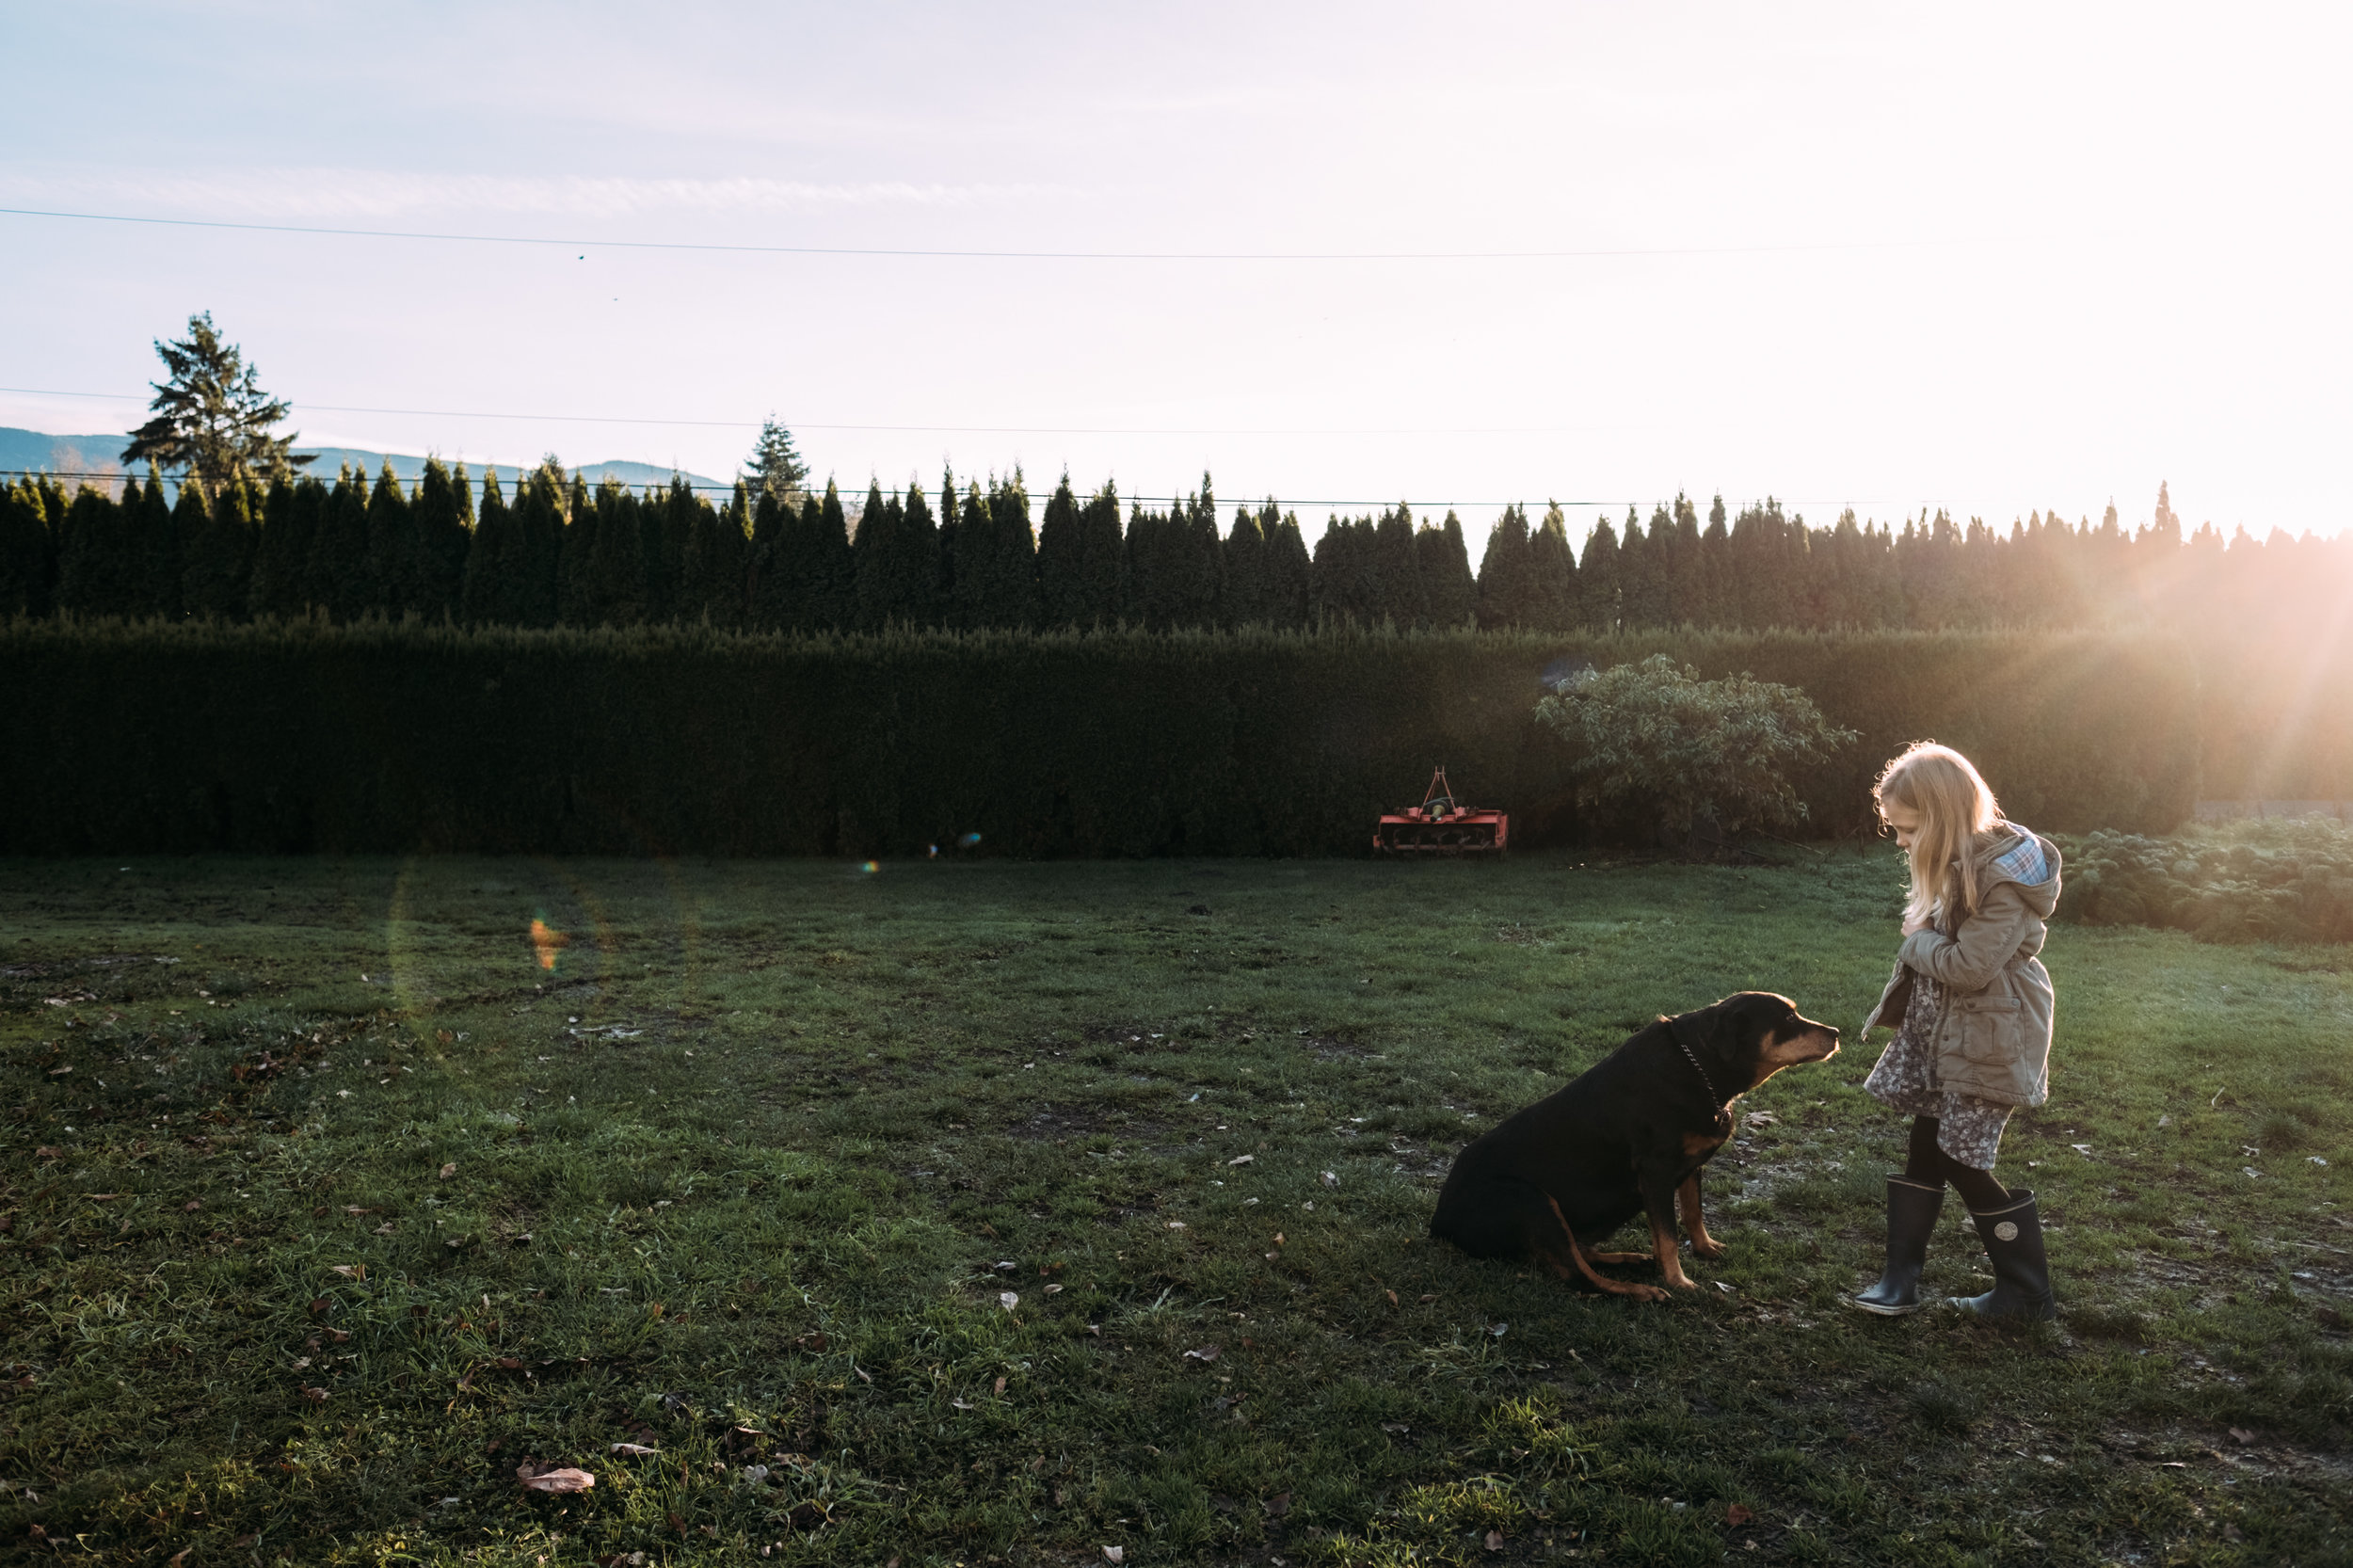 girl with dog on grass at sunset in chilliwack fraser valley canada photographer